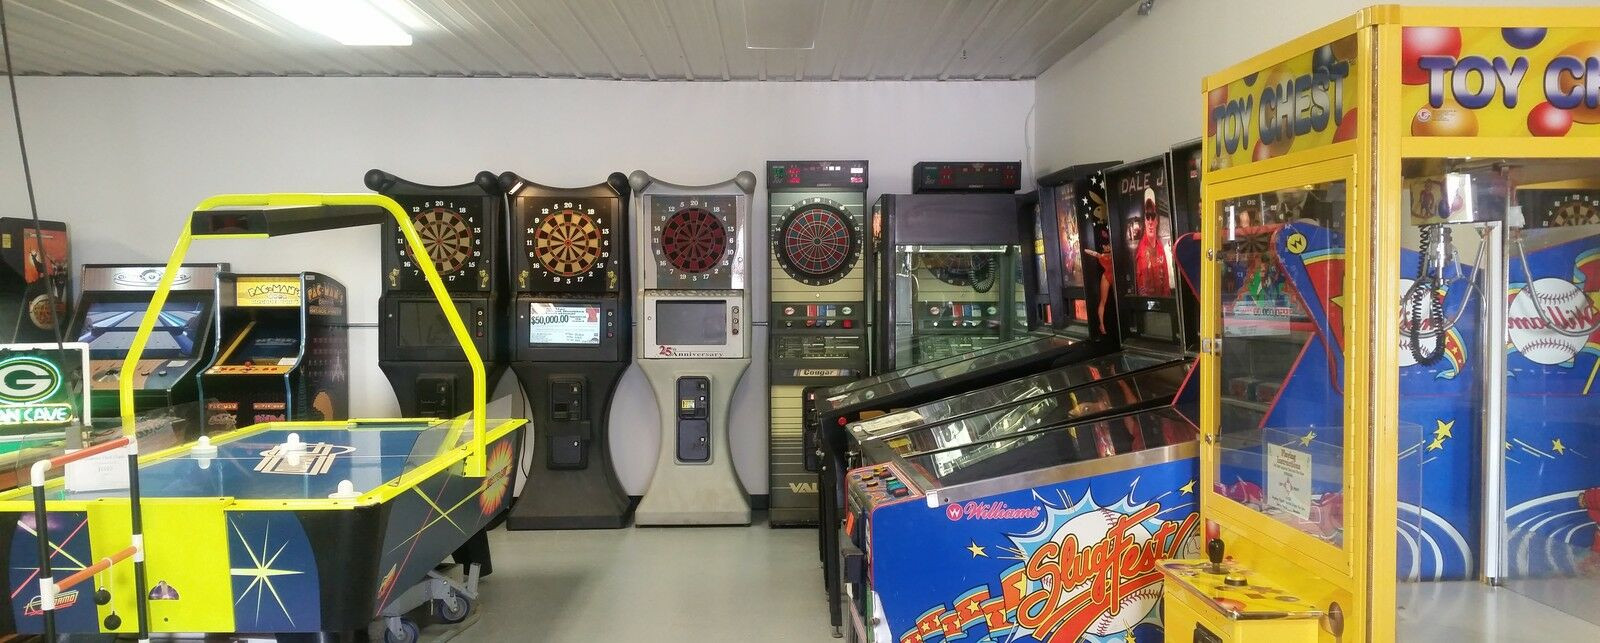 Best ideas about The Game Room Store . Save or Pin Items in Fun pany Game Room Store store on eBay Now.